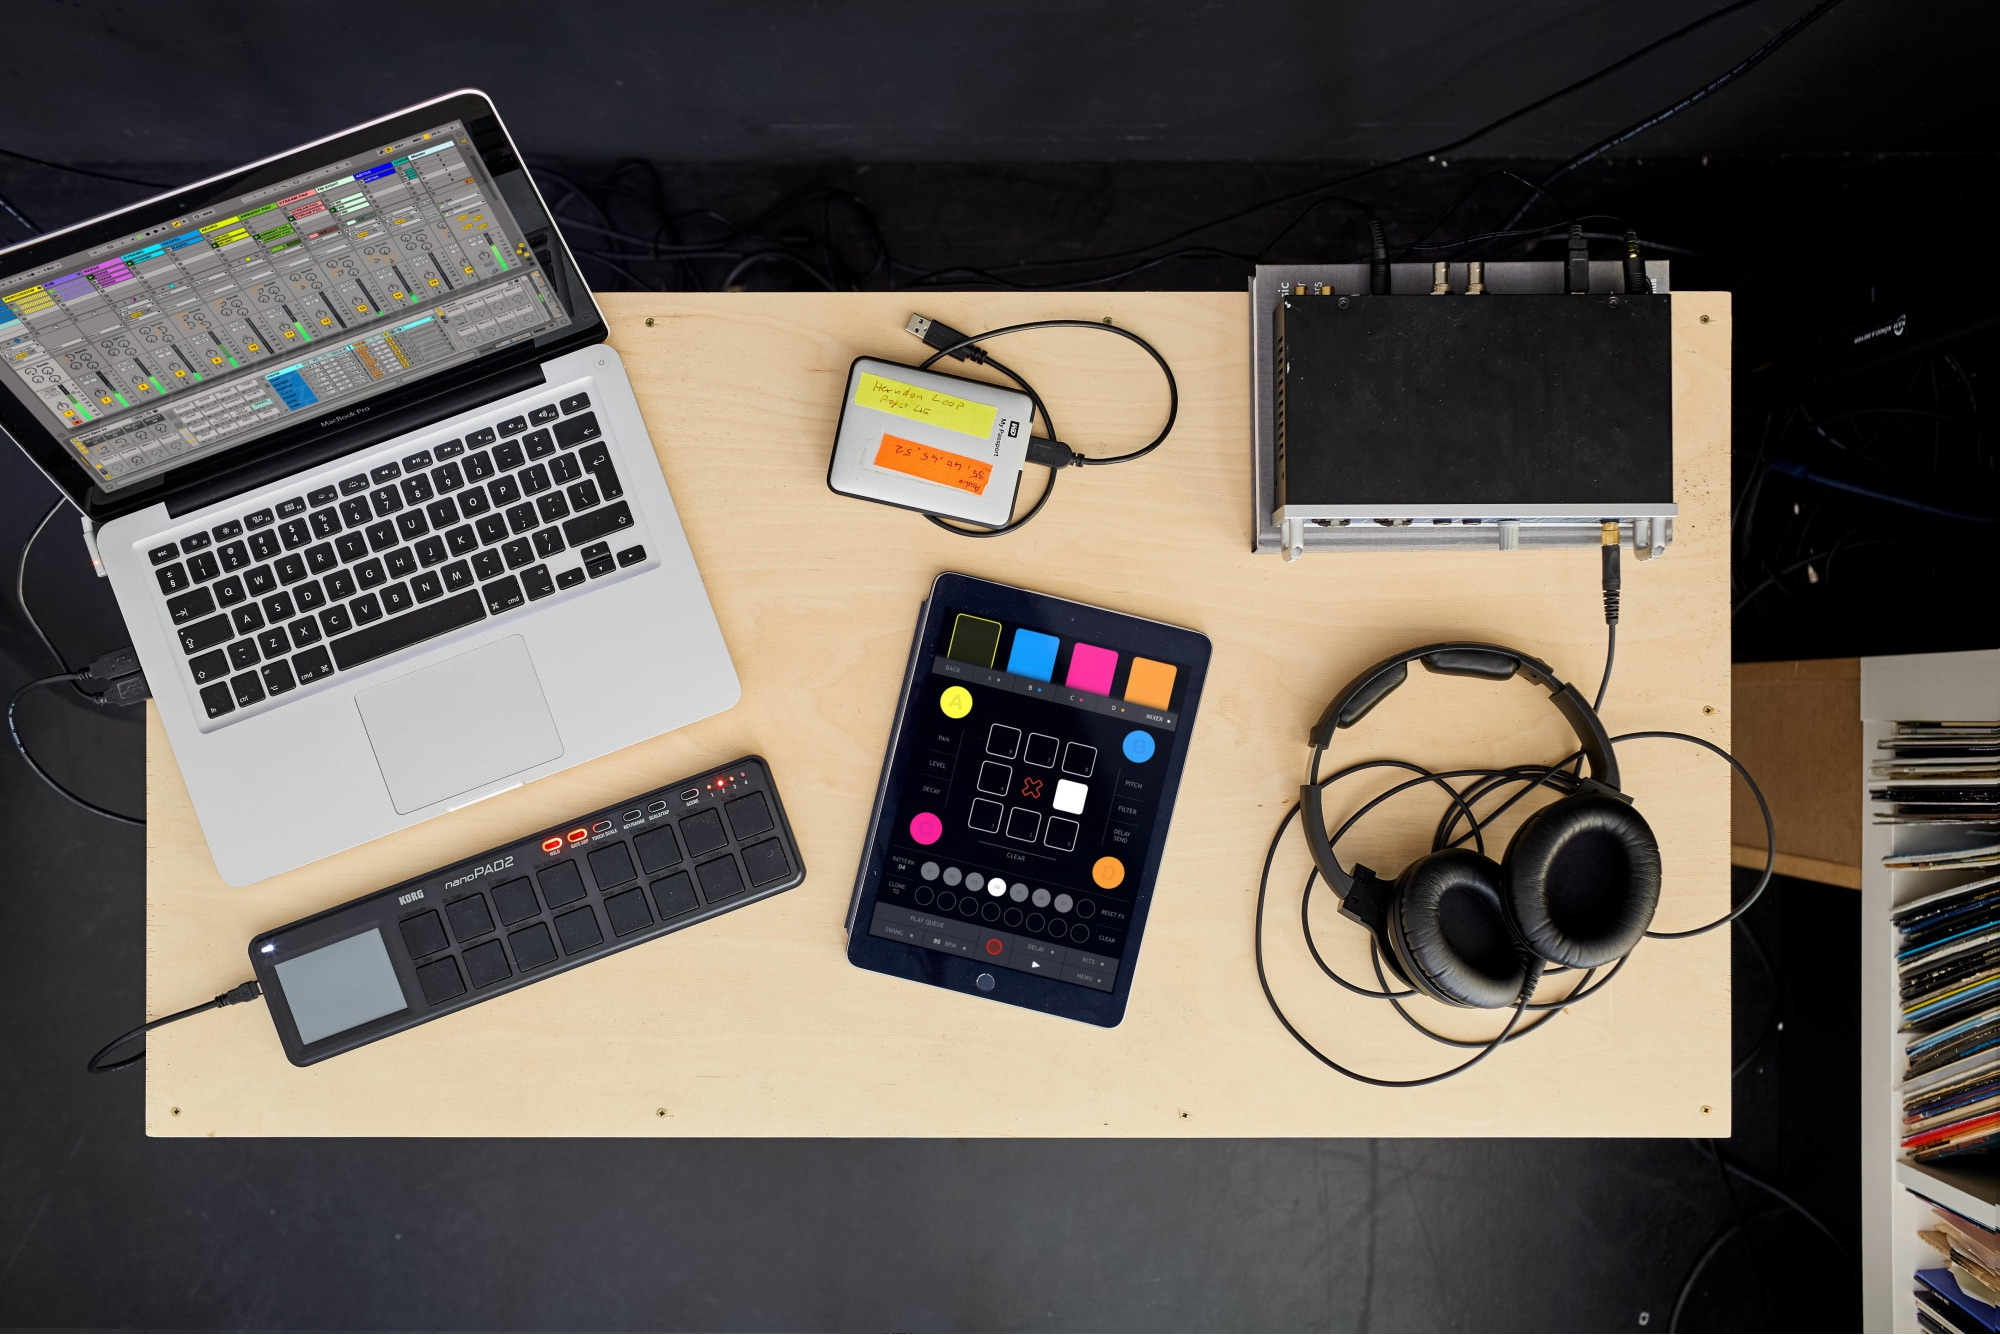 Ableton Live export comes to an SDK, plus Triqtraq